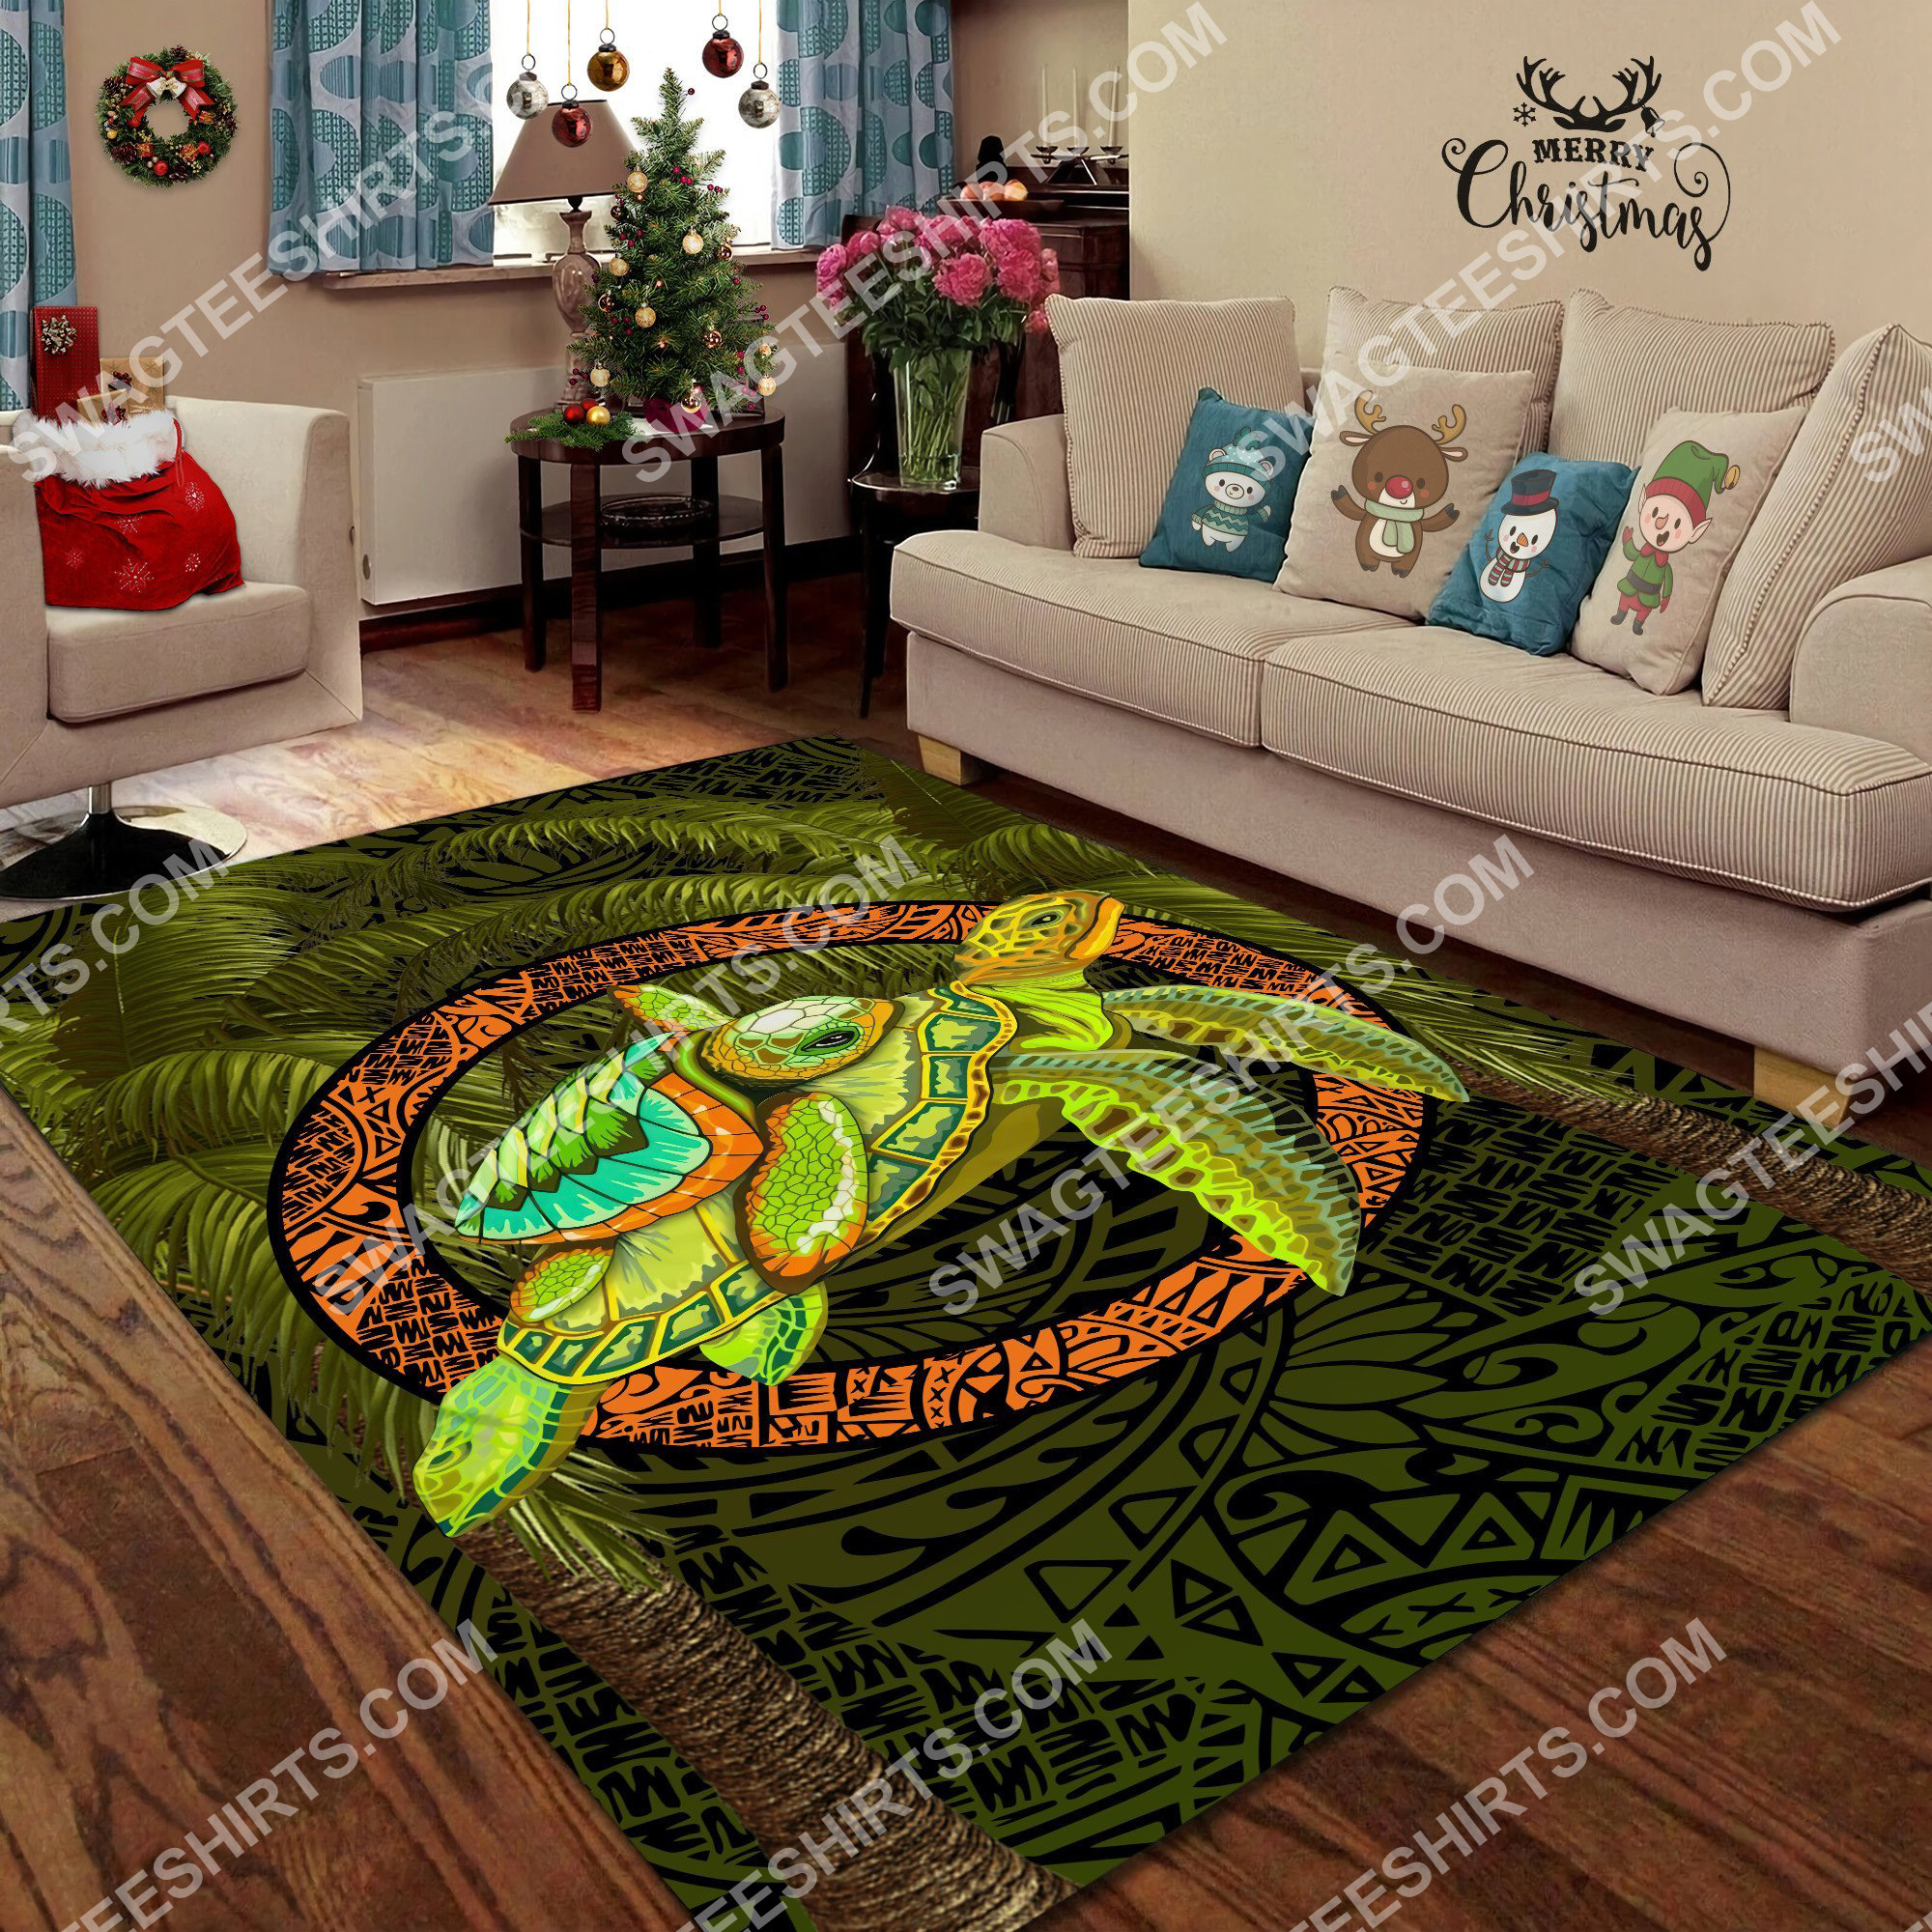 turtle palm tree art all over printed rug 4(1) - Copy